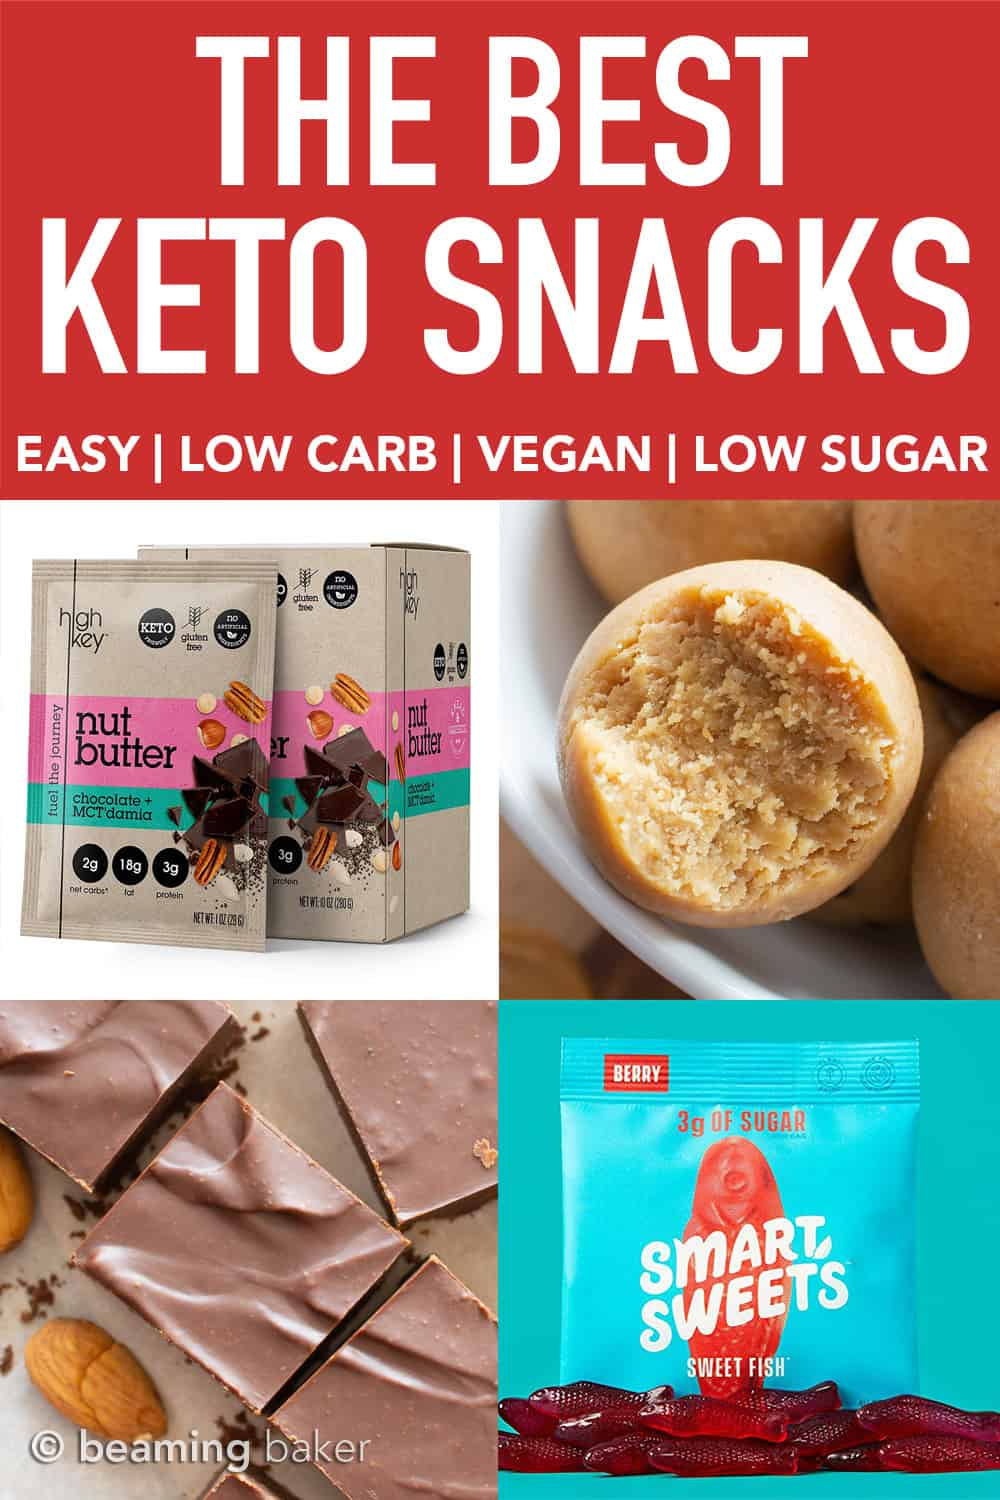 The BEST Keto Snacks: SWEETS EDITION! Easy keto diet snack ideas to keep you full and satisfied all day long. Including the best sweet homemade keto diet snacks and the best sweet snacks for the keto diet you can buy online. #Keto #KetoDessert #KetoSnacks #KetoSnacksOnTheGo #Vegan | Post on BeamingBaker.com